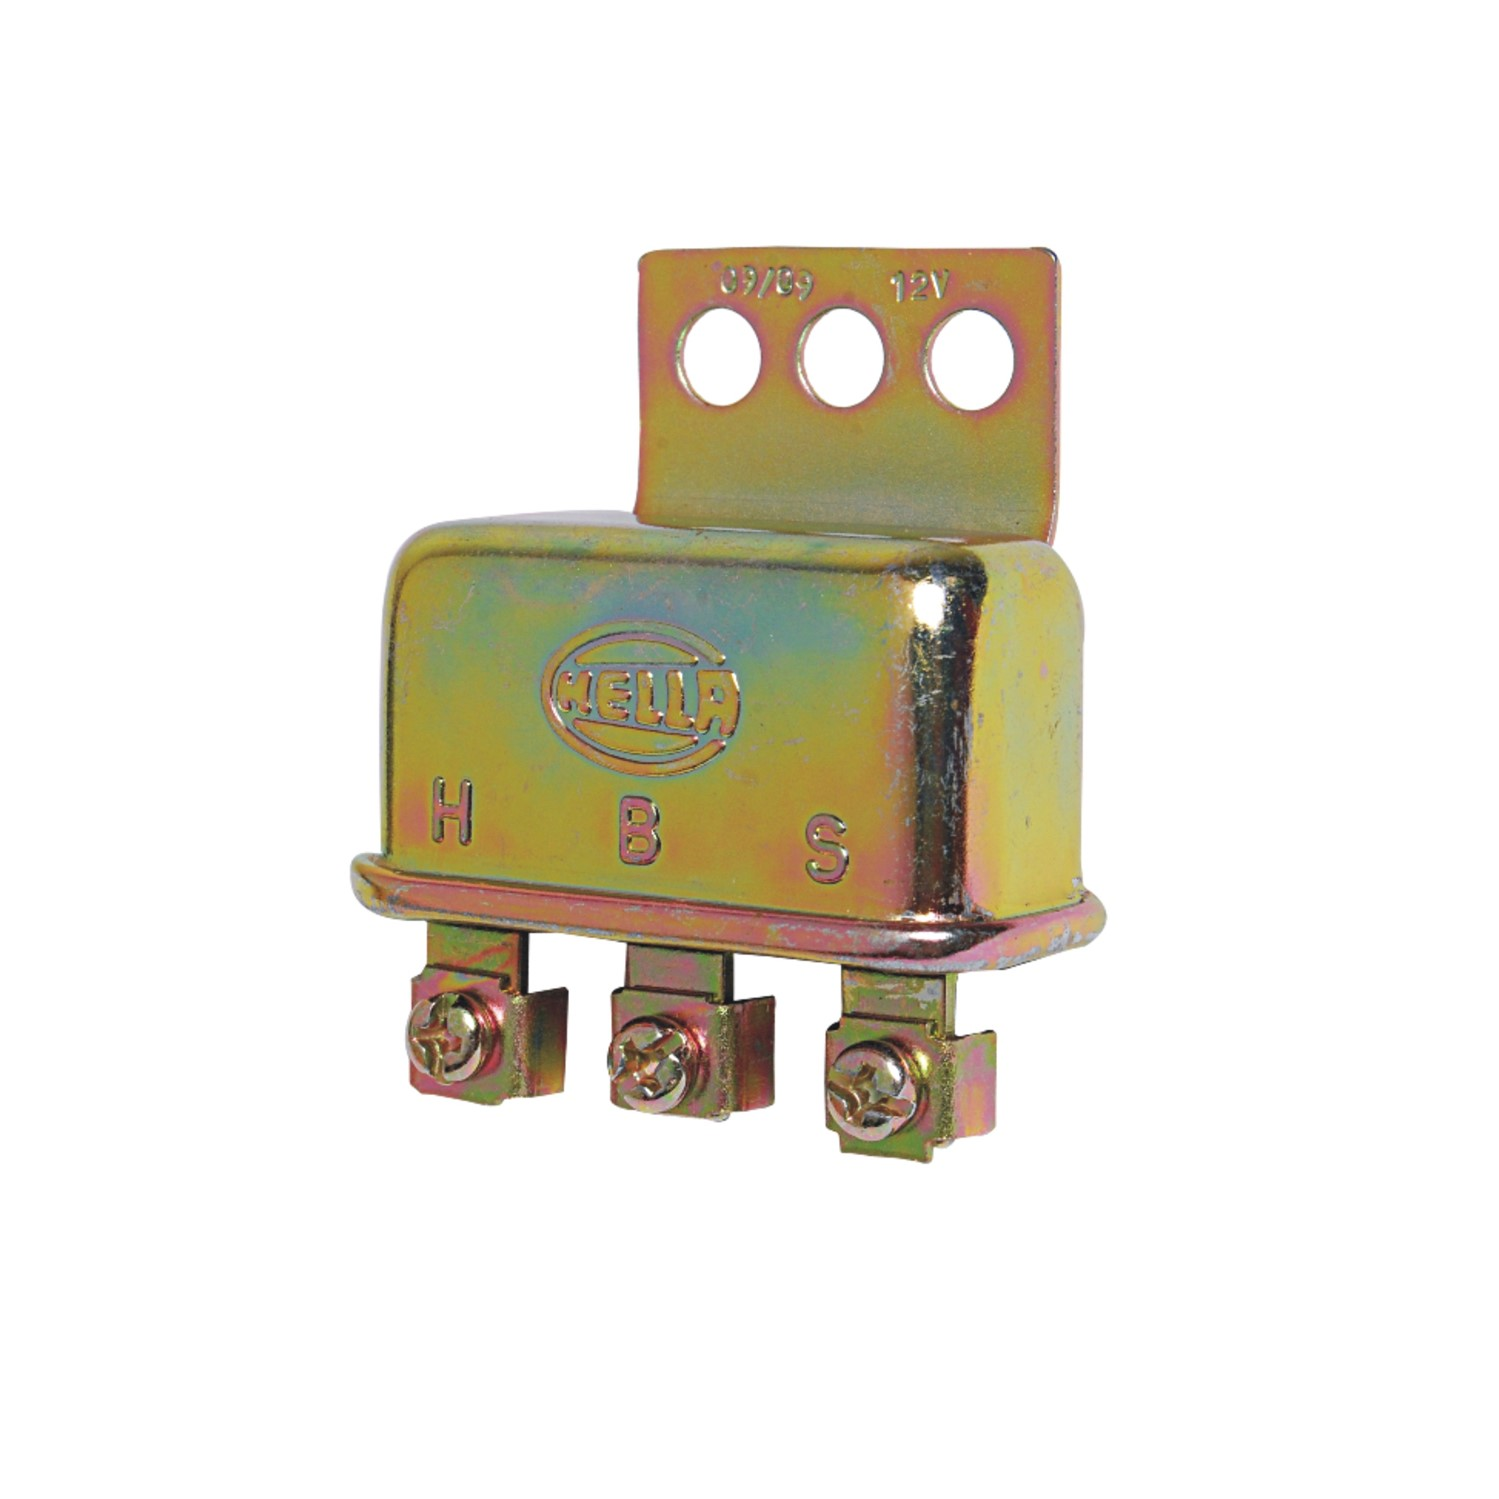 HELLA 329316061 3pin Metal Body Relay